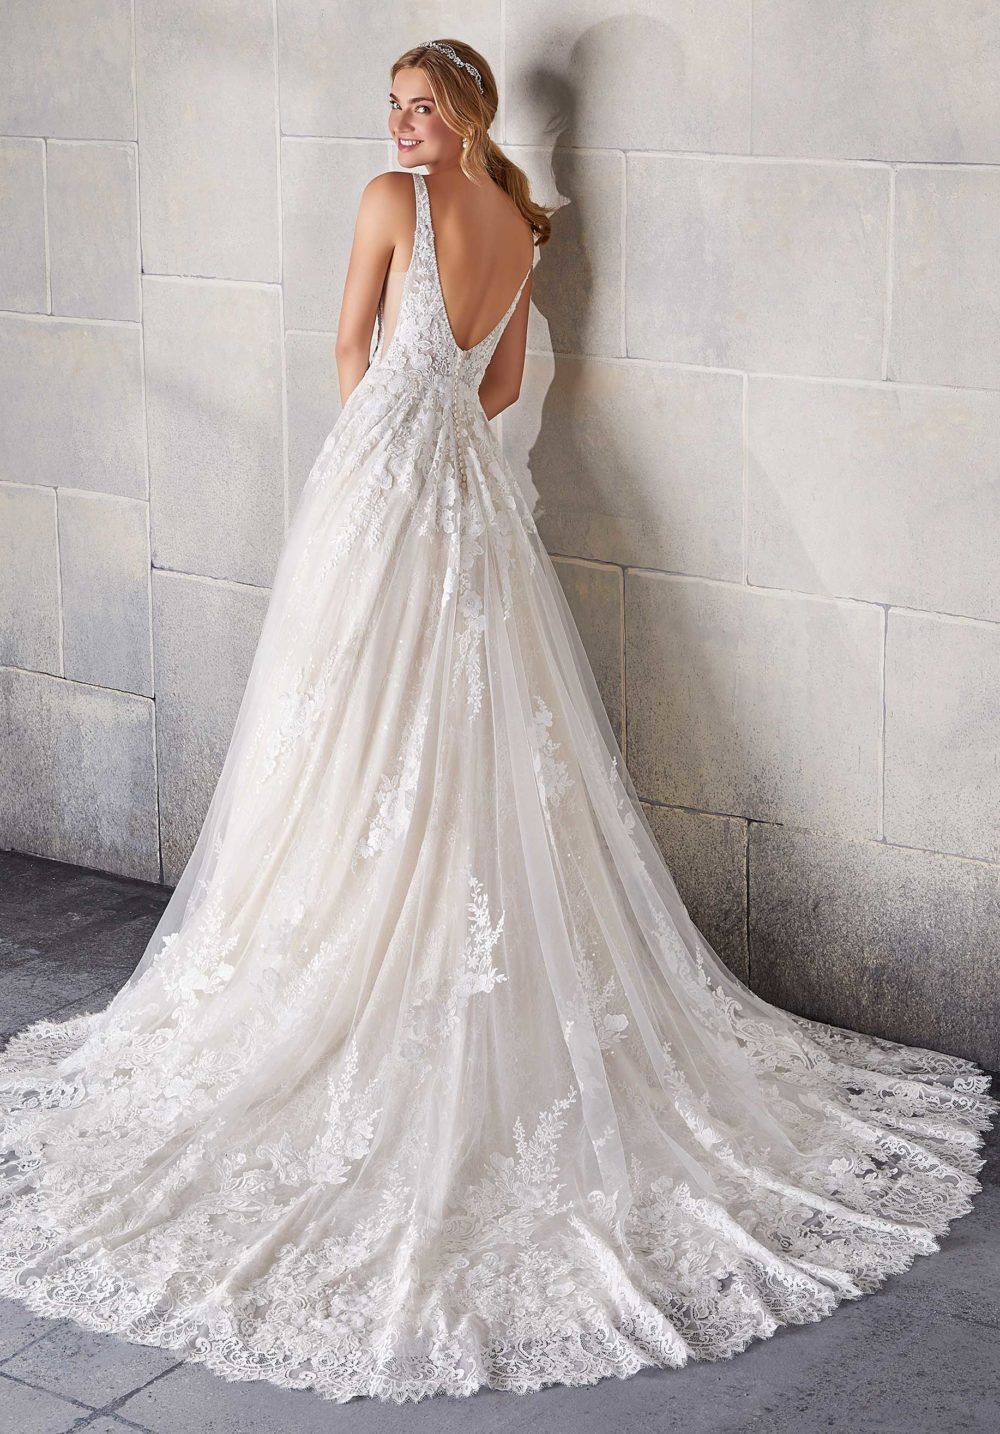 Morilee Wedding Gown Dress style 2142 back